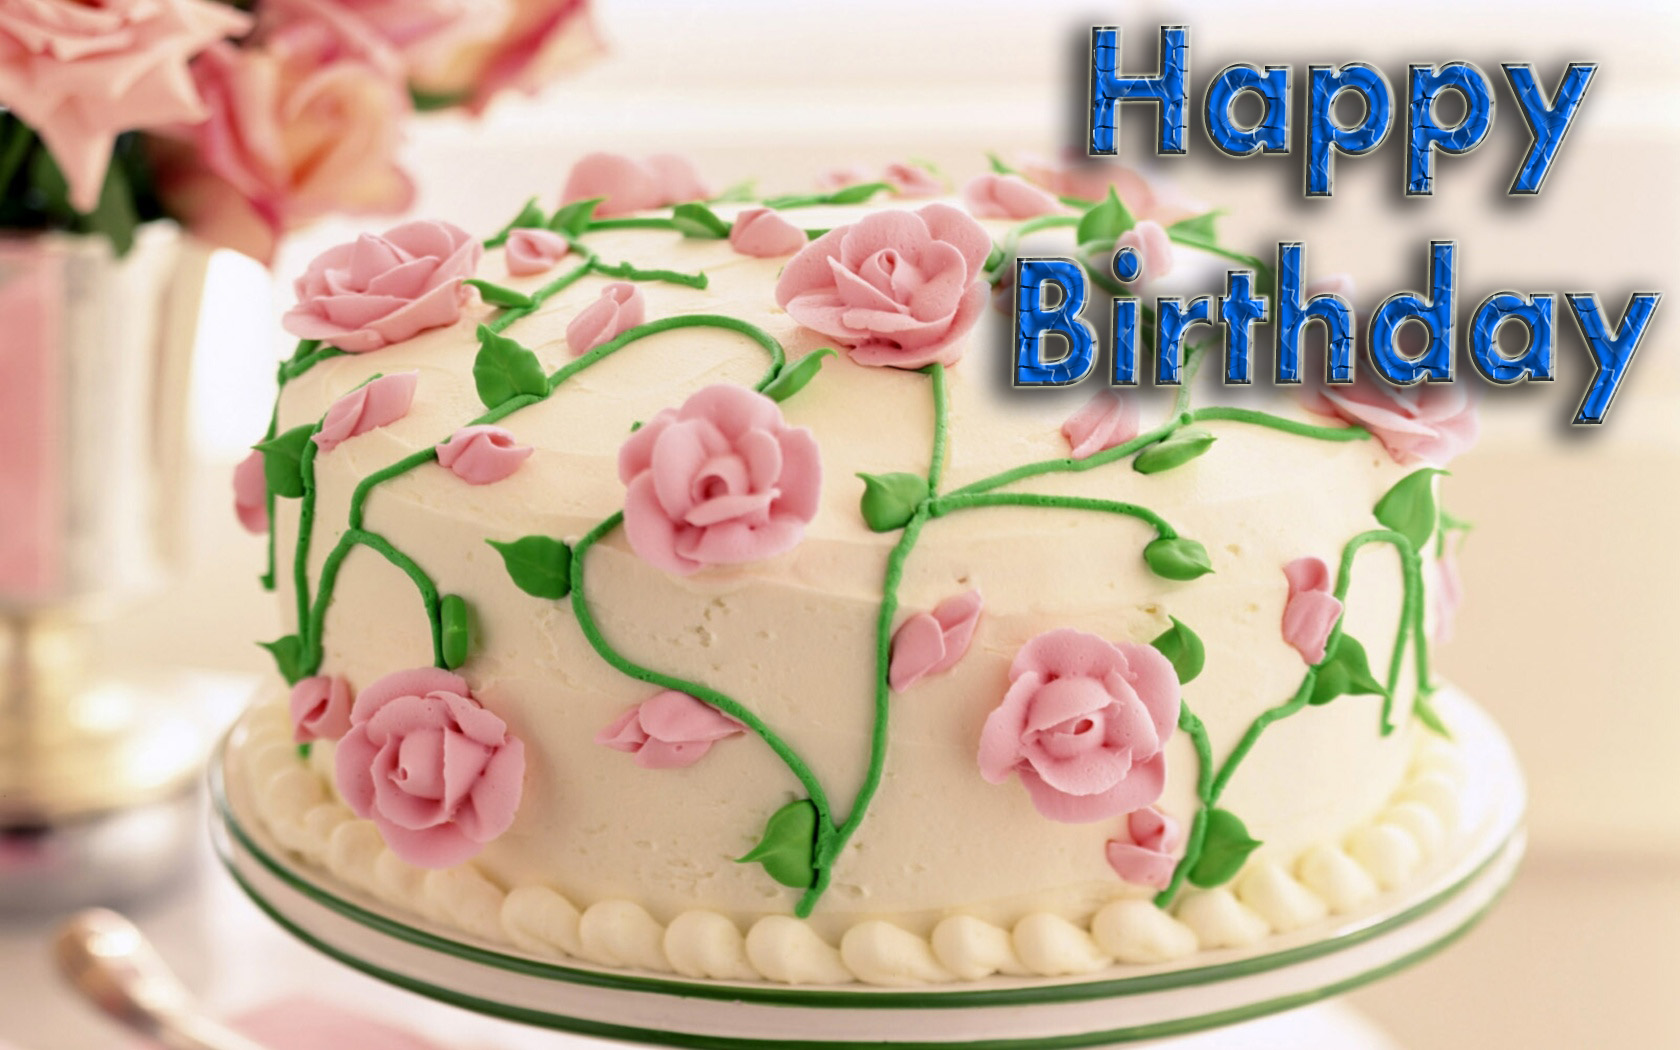 birthday cake wallpaper hd ; 36386692-happy-birthday-cake-wallpaper